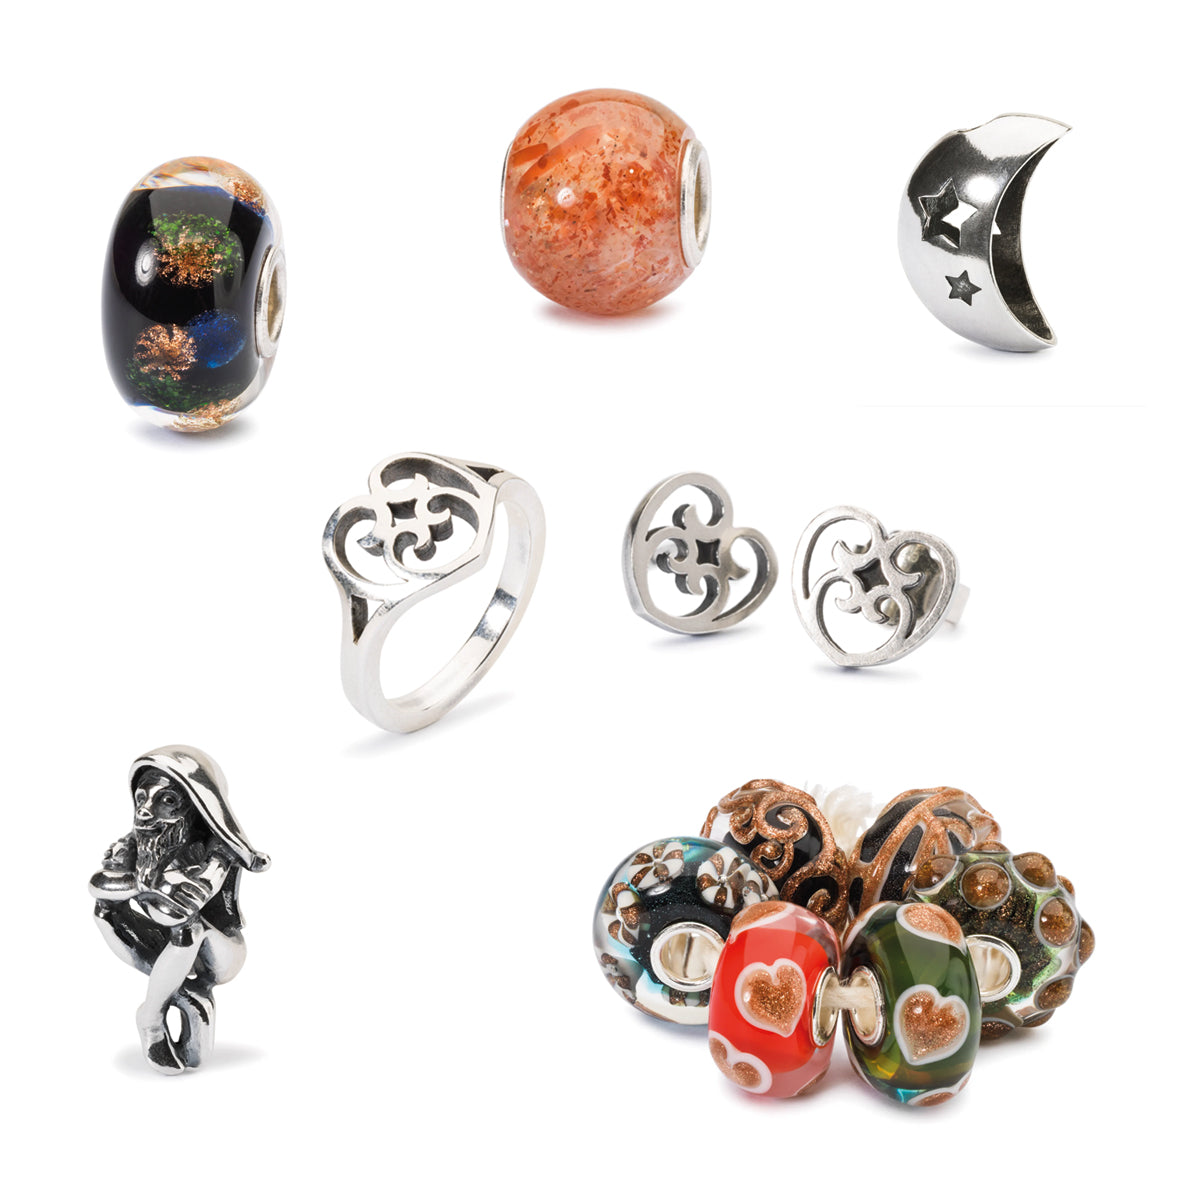 Trollbeads Weihnachten und Winterkollektion 2019 | Christmas and Winter Collection 2019 Sonne, Mond und Sterne | My Sun, My Moon, My Stars